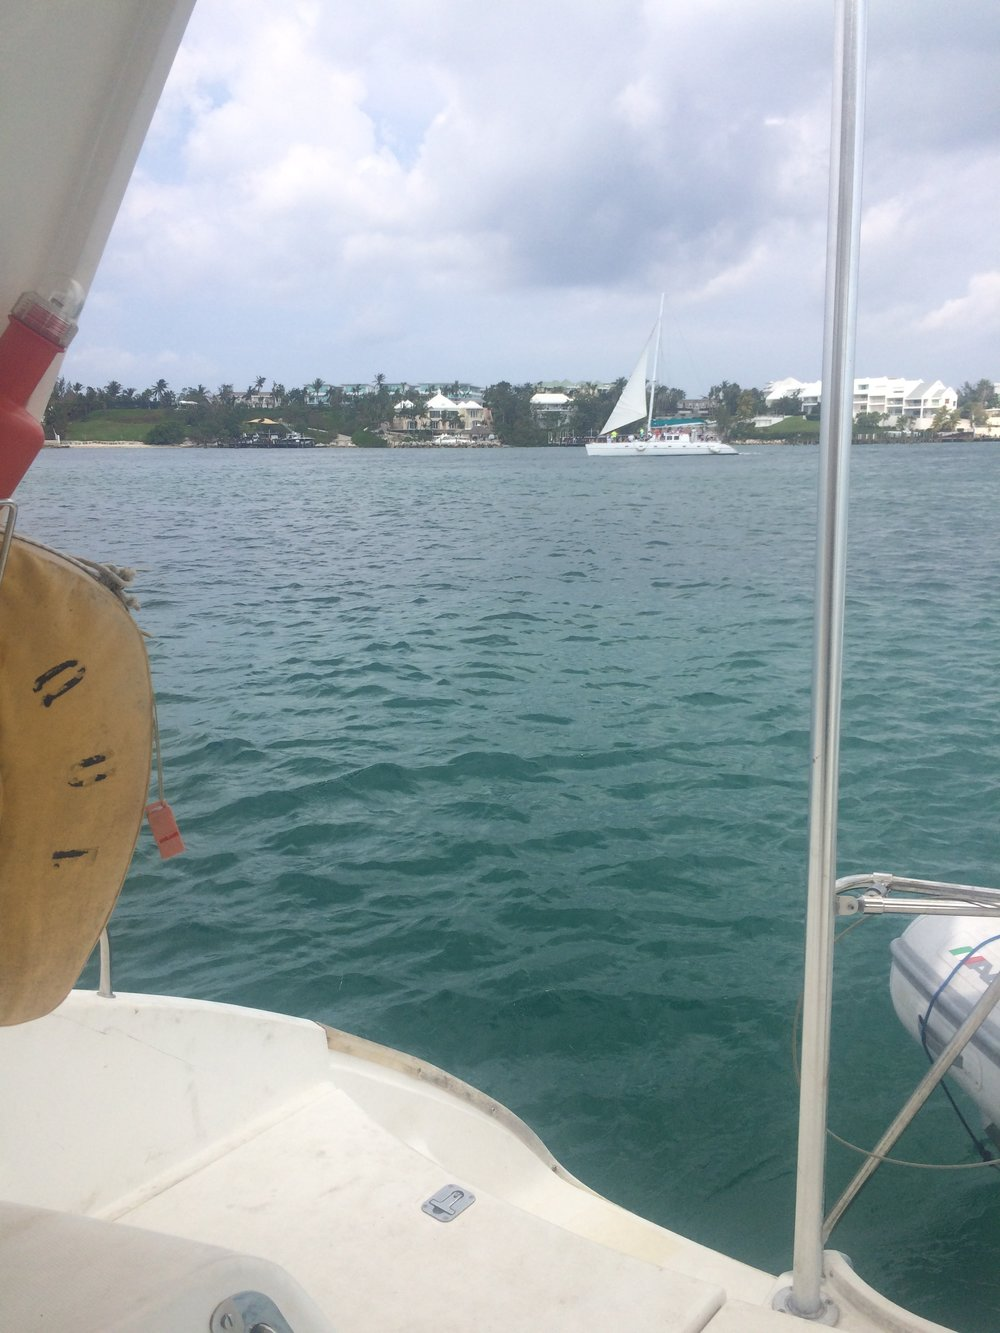 Tour boats cruise harbor narrating Bahamian bests as they pass.